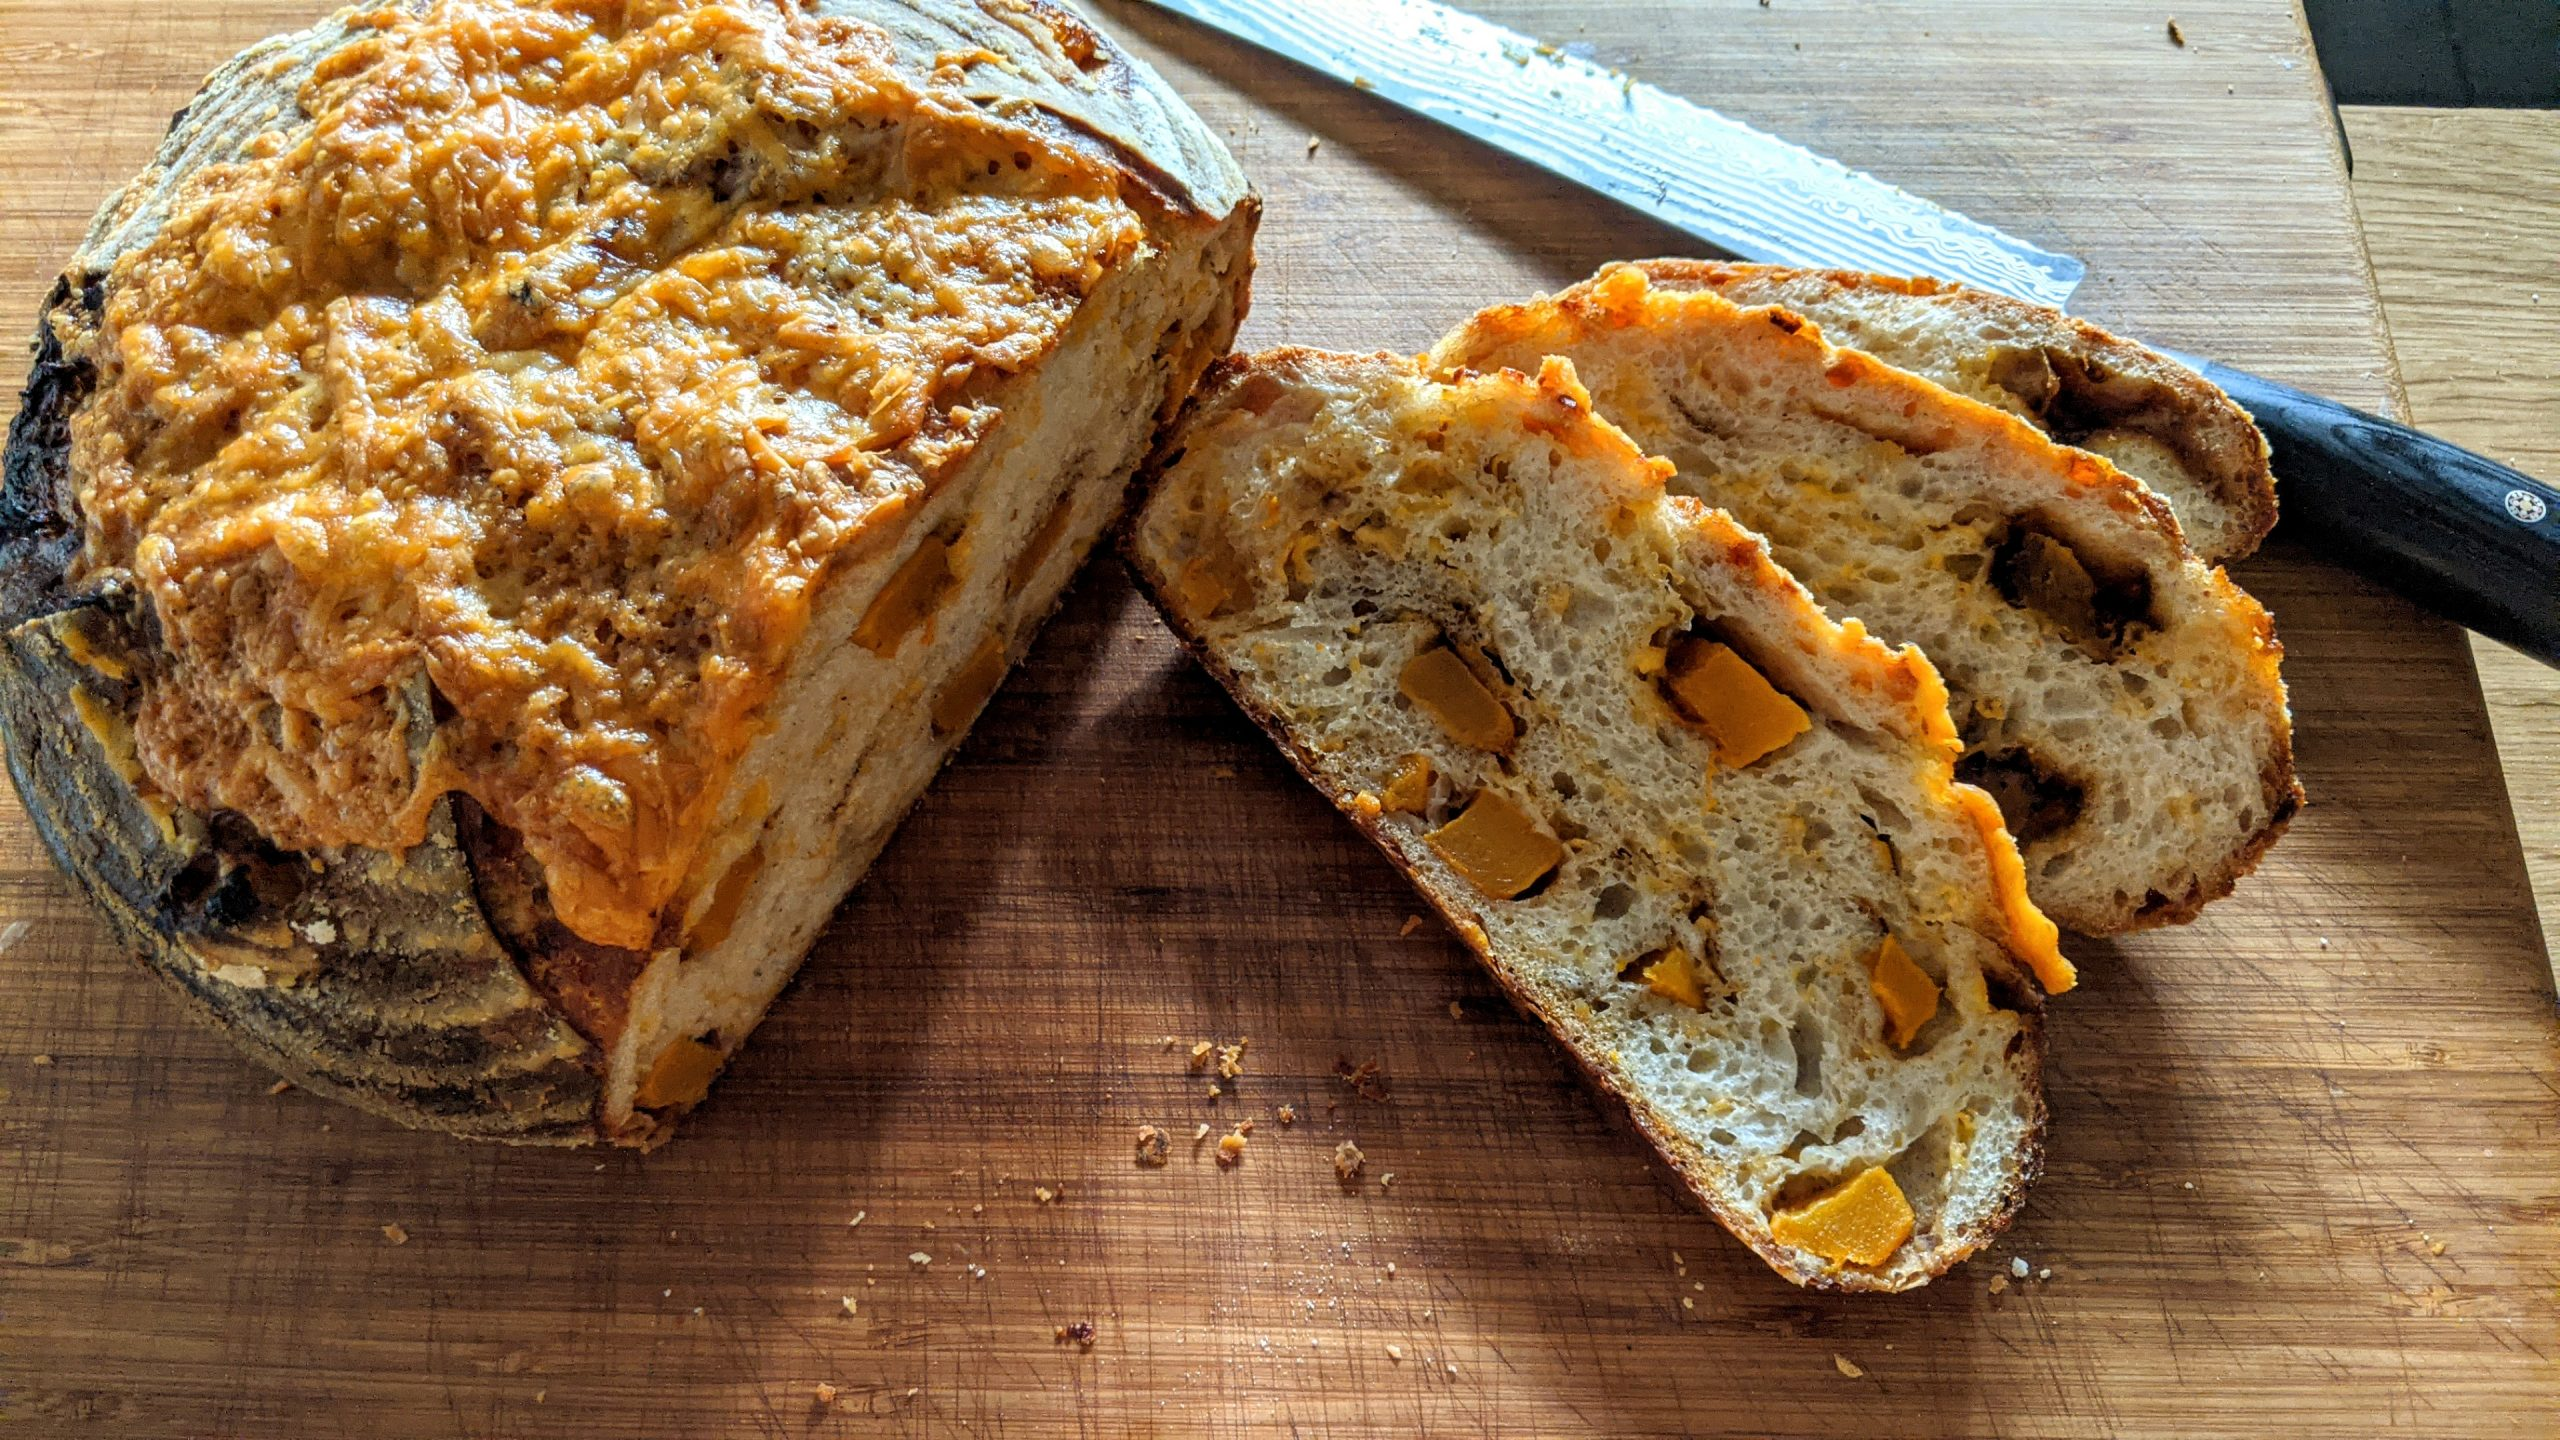 Spiced Pumpkin, Cheddar & Roasted Garlic Sourdough, Sourdough recipe, Patrick Ryan, I Love Cooking, bread recipes